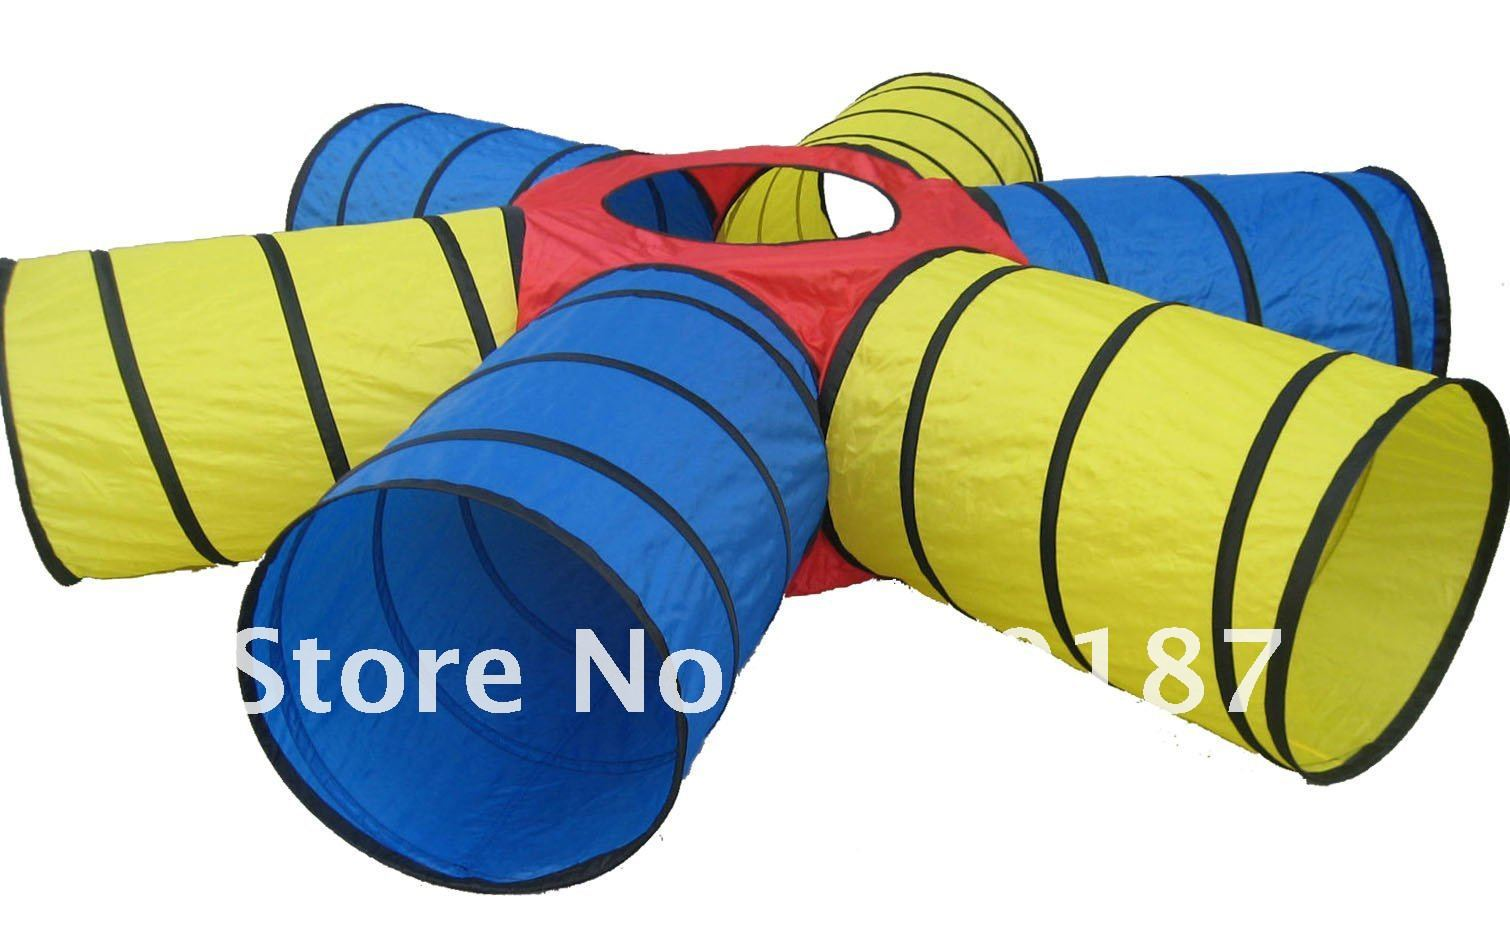 kids play tunnel tent set educational game dropshipping service-in Toy Sports from Toys u0026 Hobbies on Aliexpress.com | Alibaba Group  sc 1 st  AliExpress.com & kids play tunnel tent set educational game dropshipping service ...